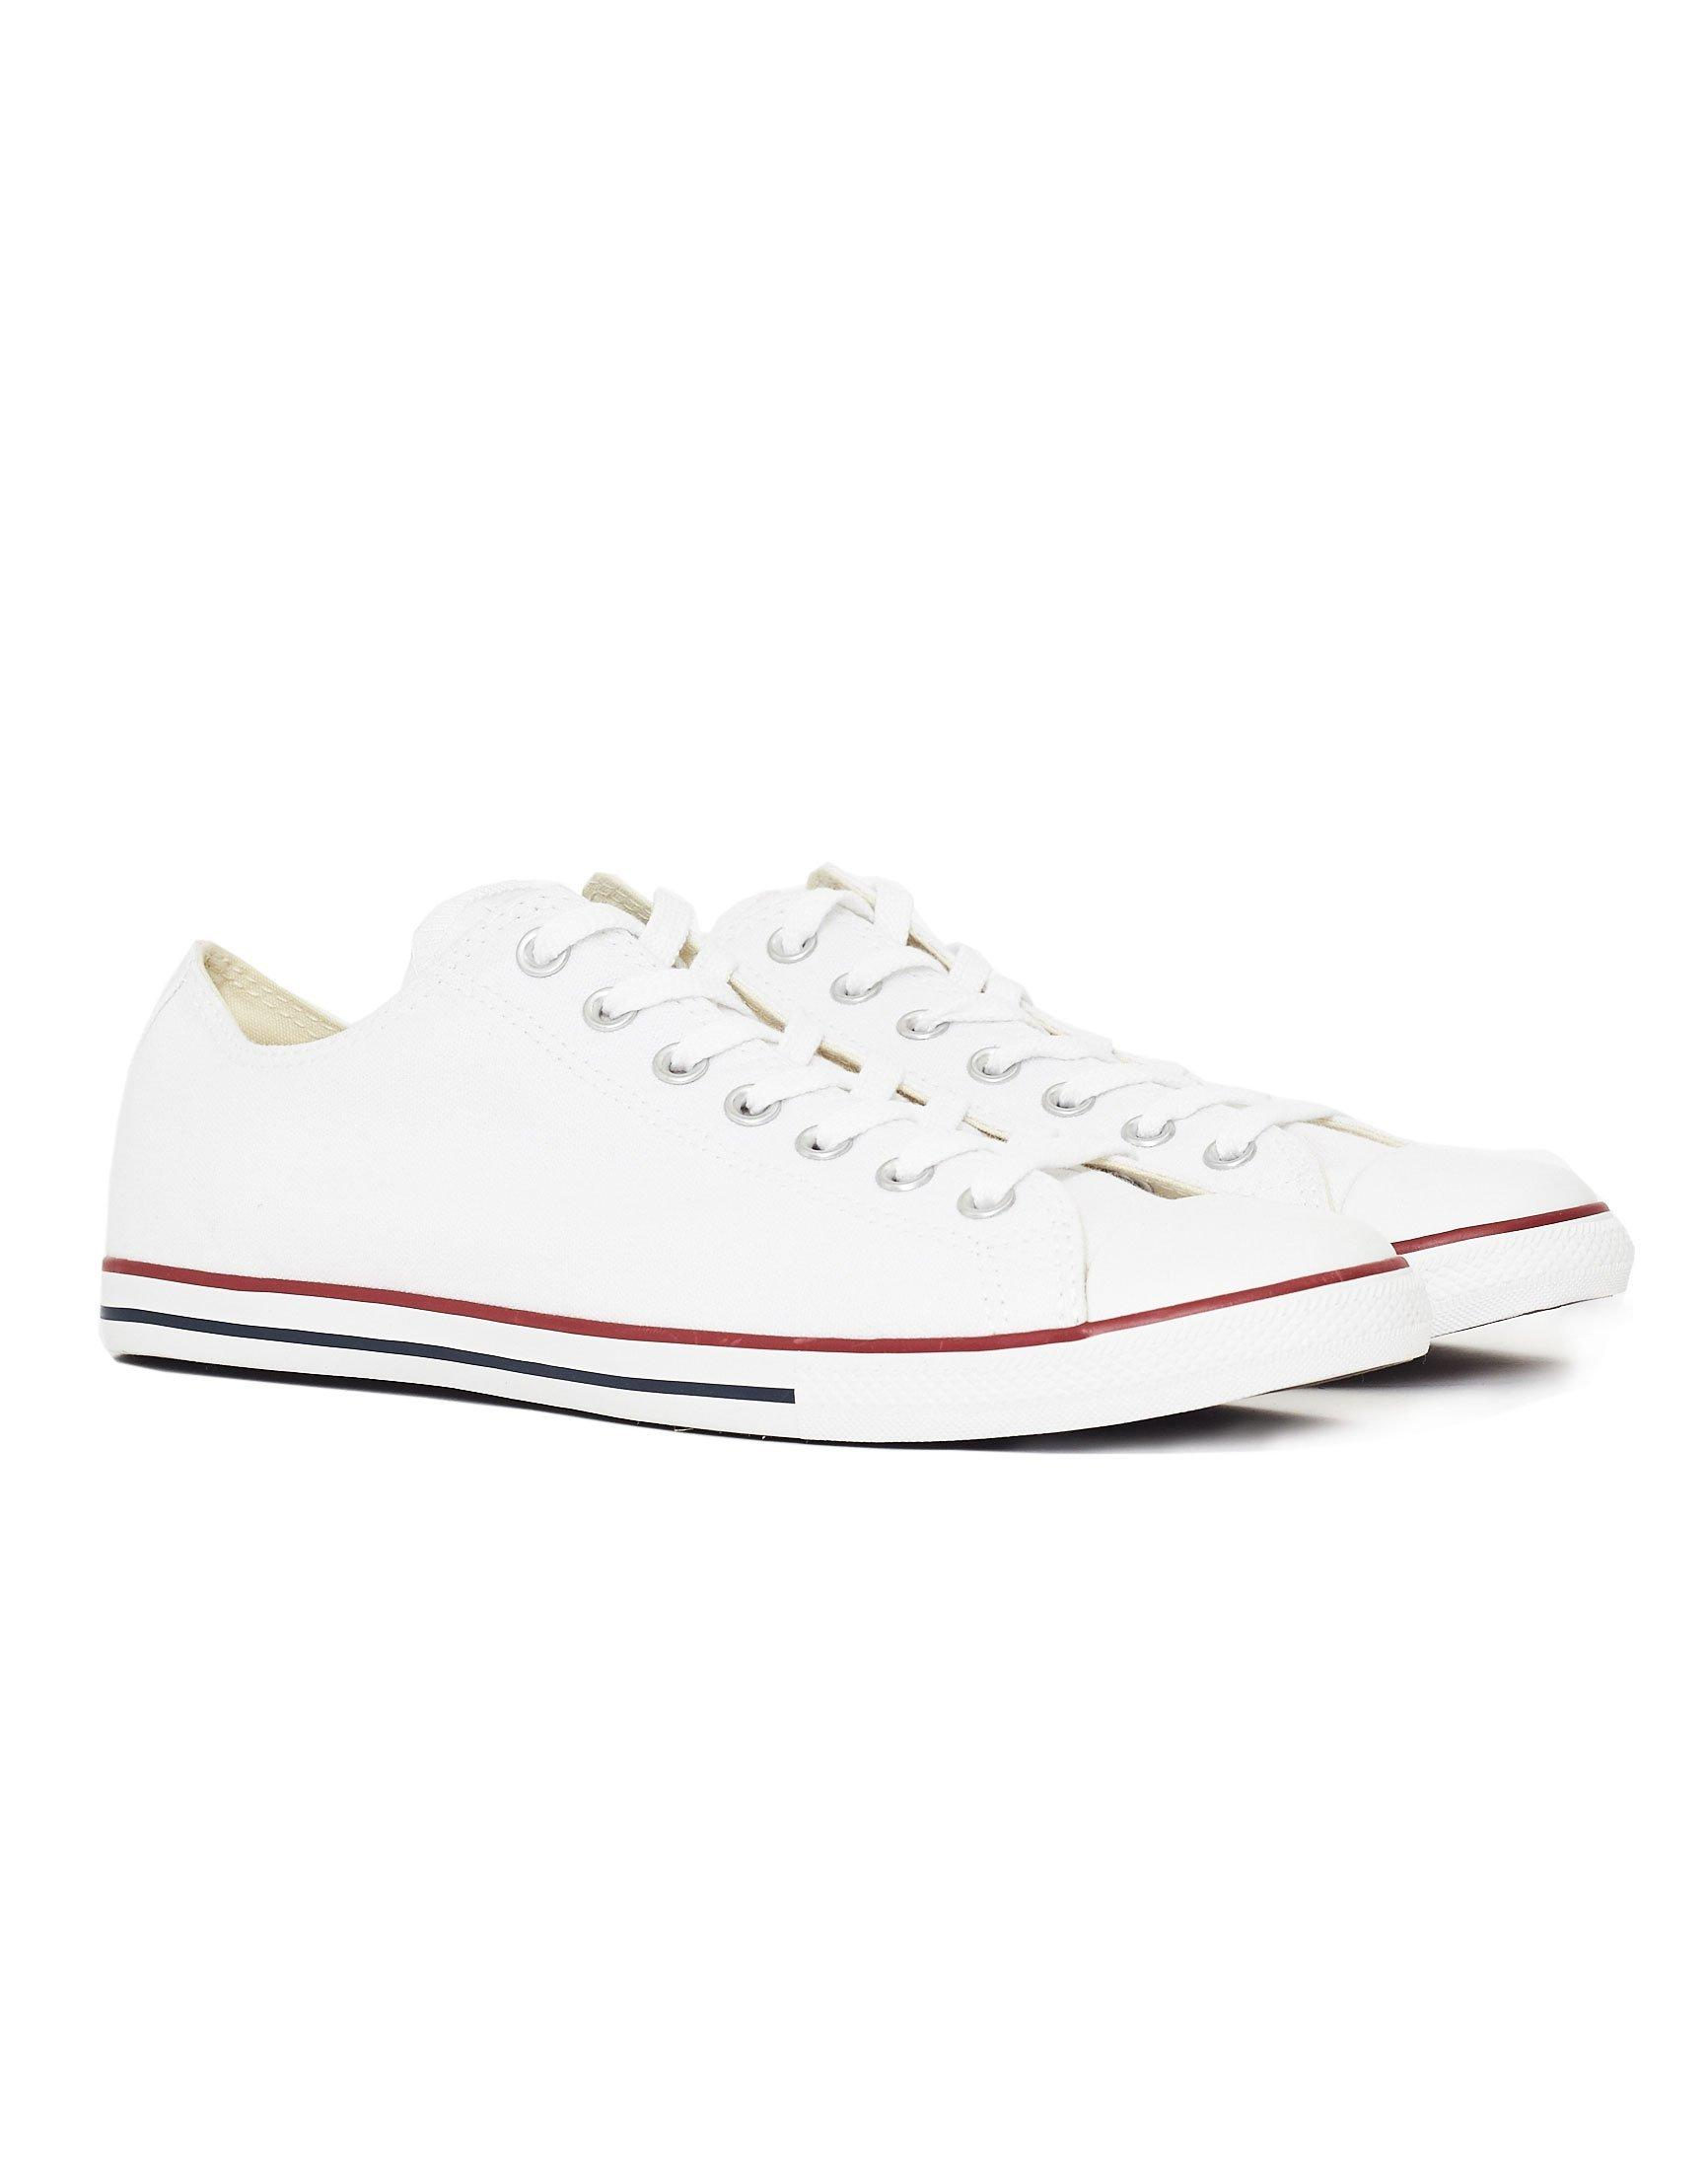 Lyst - Converse Chuck Taylor All Star Lean Plimsolls White in White ... fc6f6ace3